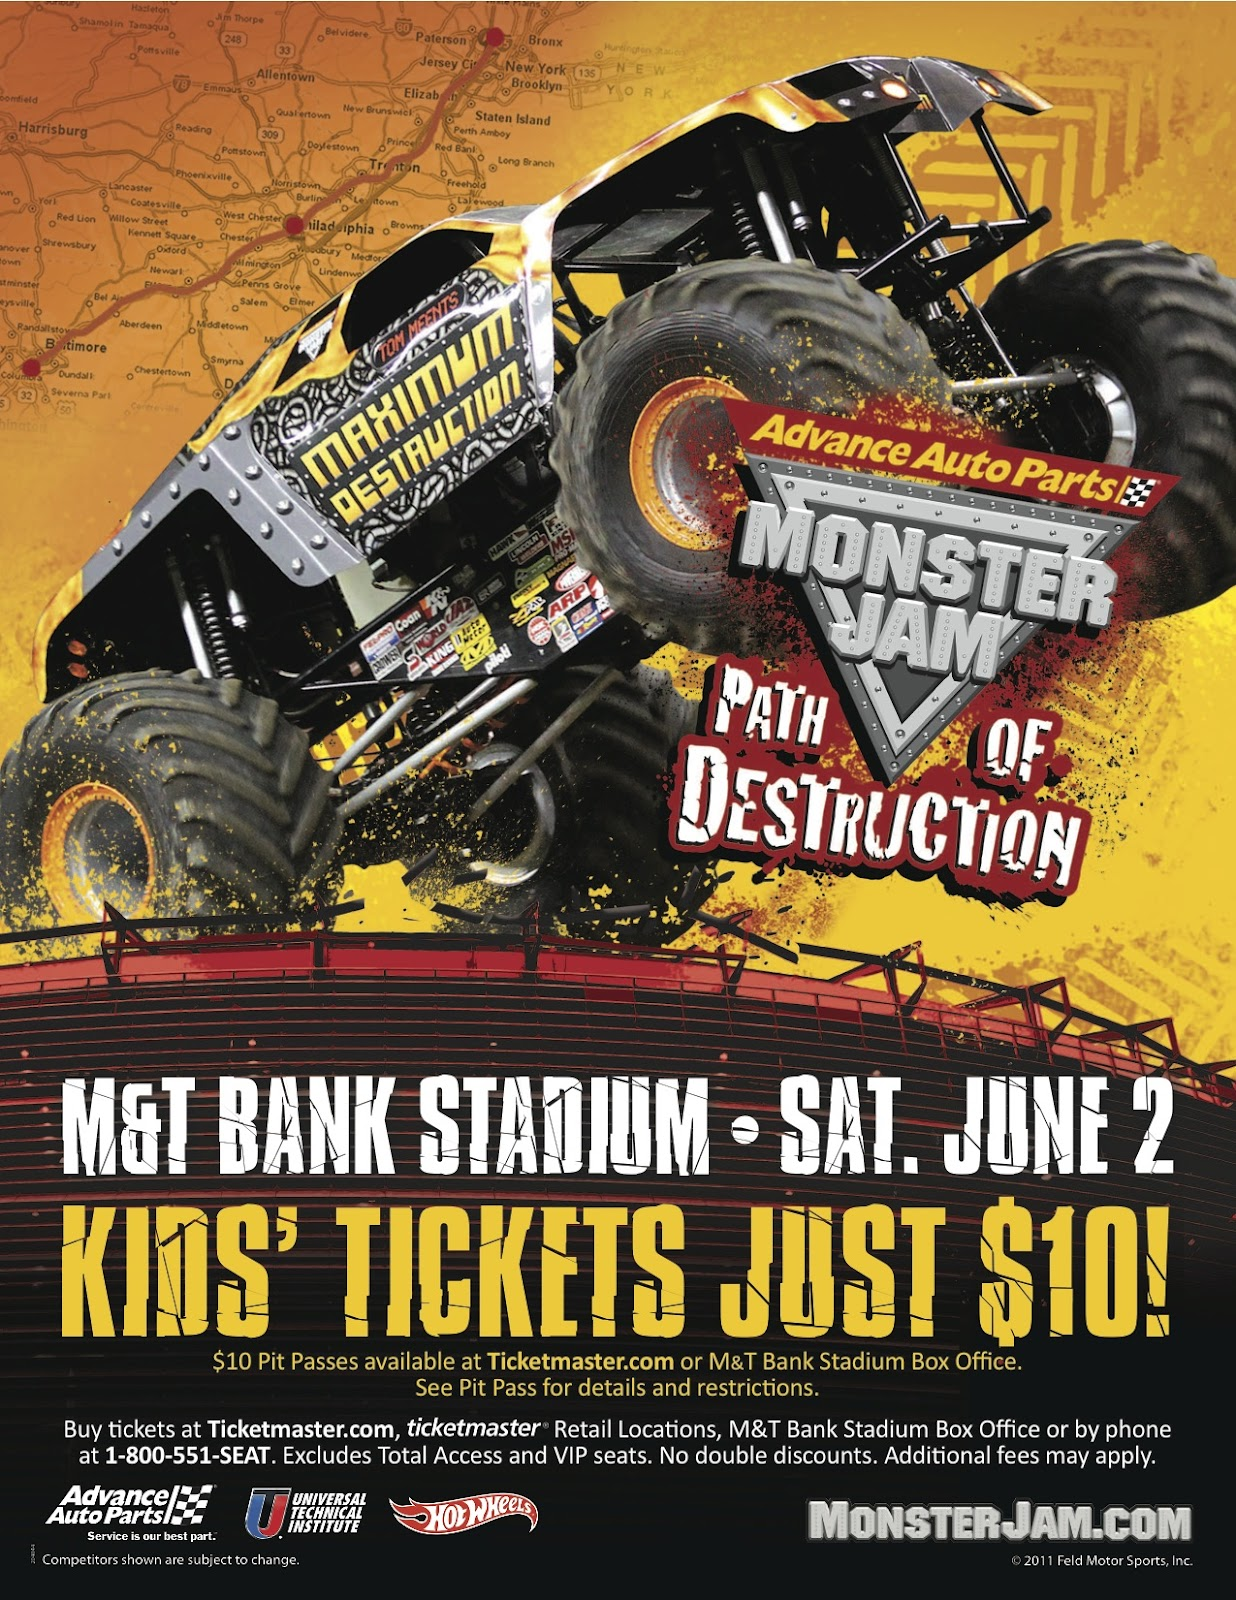 Details: Tap deal to copy the discount coupon code. Keep in mind to paste code when you have a look at. Online just. - Coupon Type: 20% Off. Promo Code: B2SW4 (89 People Used) Special Offer! 15% Off Your Order. Details: Get 15% off your order Tickets for Advance Auto Parts Monster Jam World Finals on Sale Now.